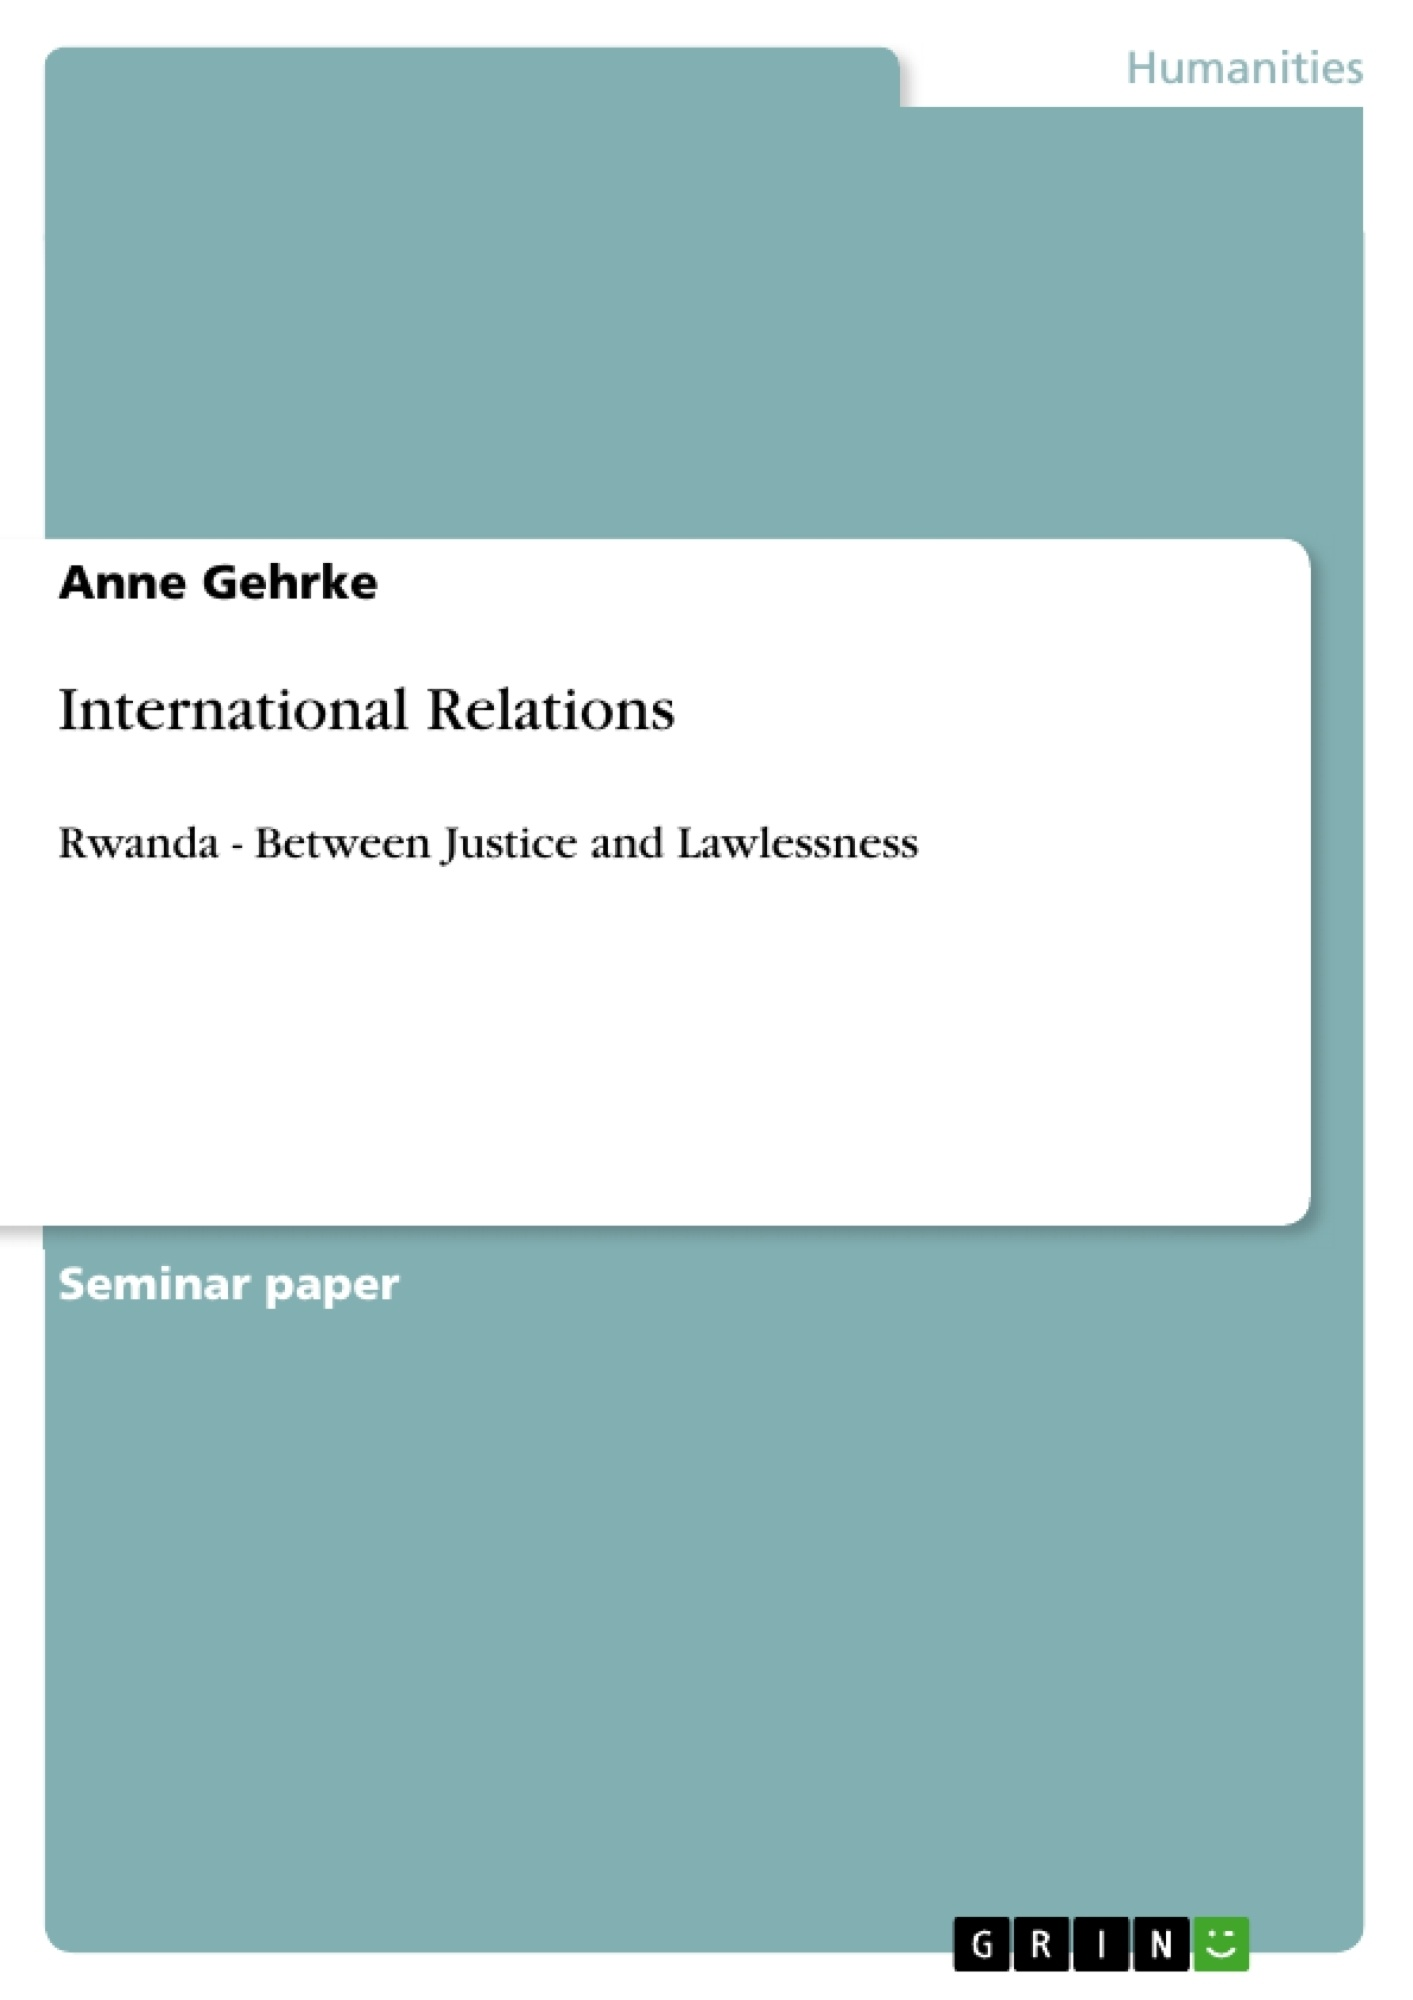 Title: International Relations